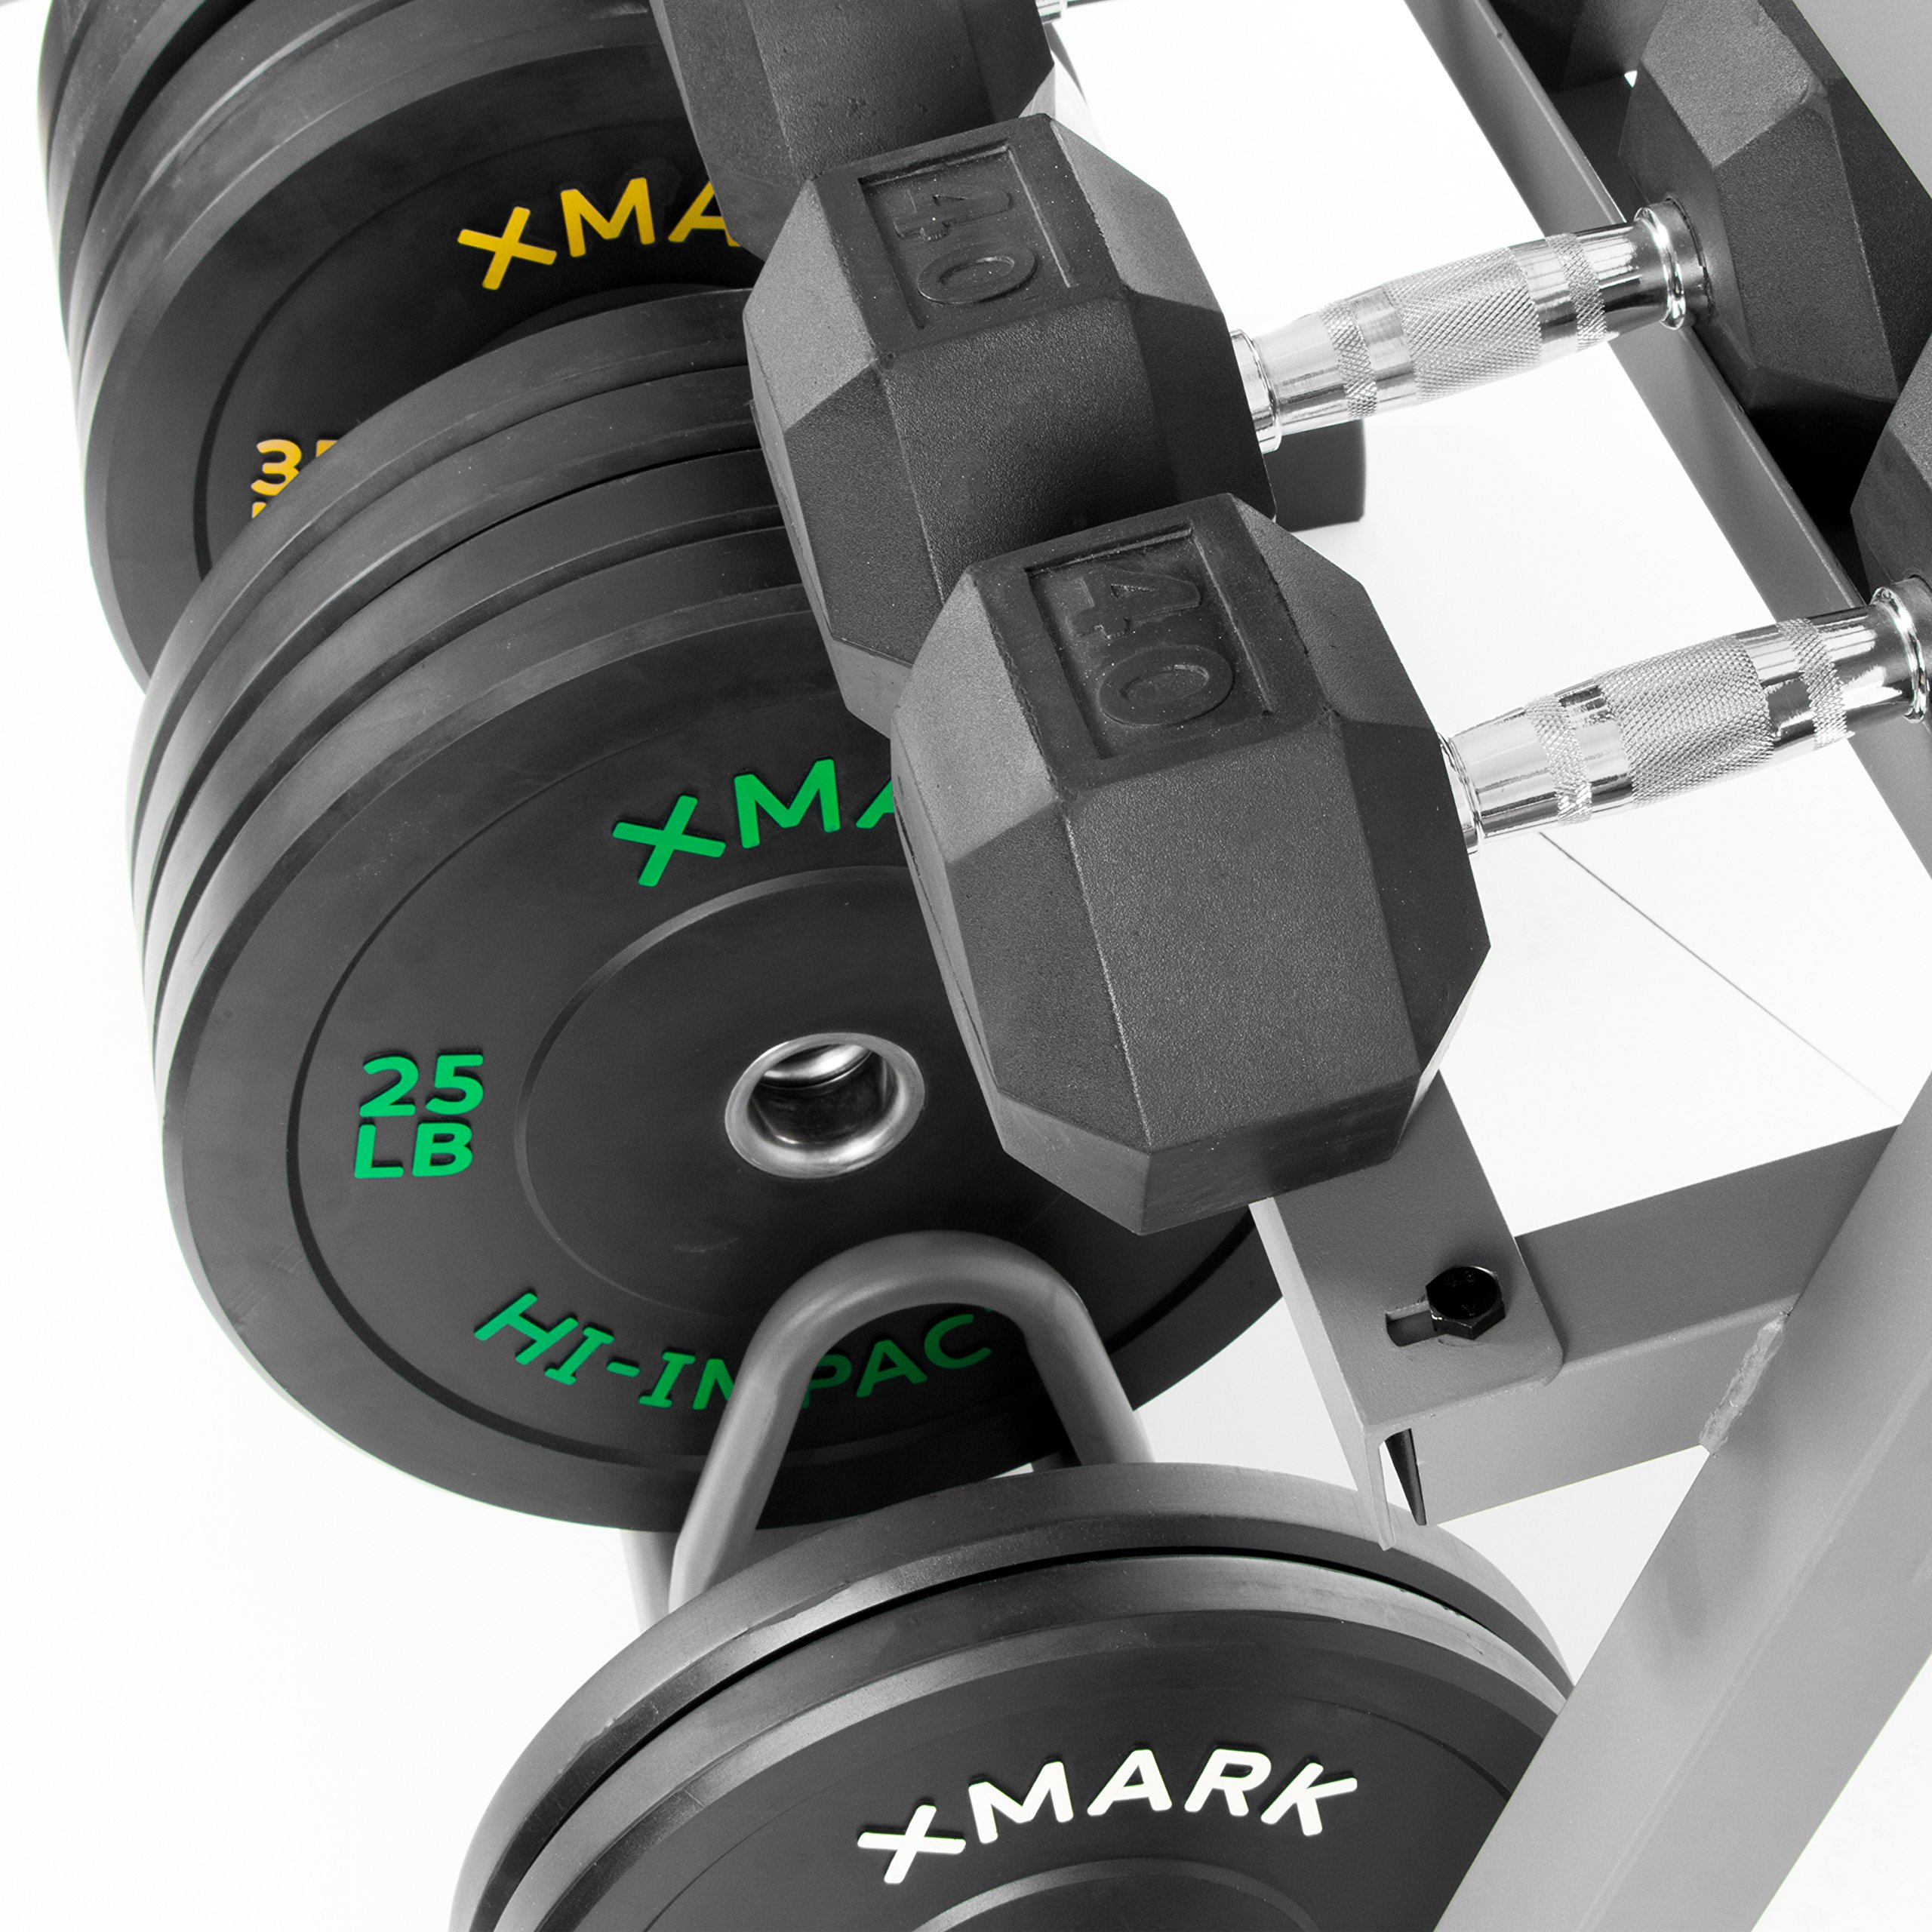 XMark All-in-One Dumbbell Rack, Plate Weight Storage and Dual Vertical Bar Holder, Design Patent Pending by XMark (Image #6)